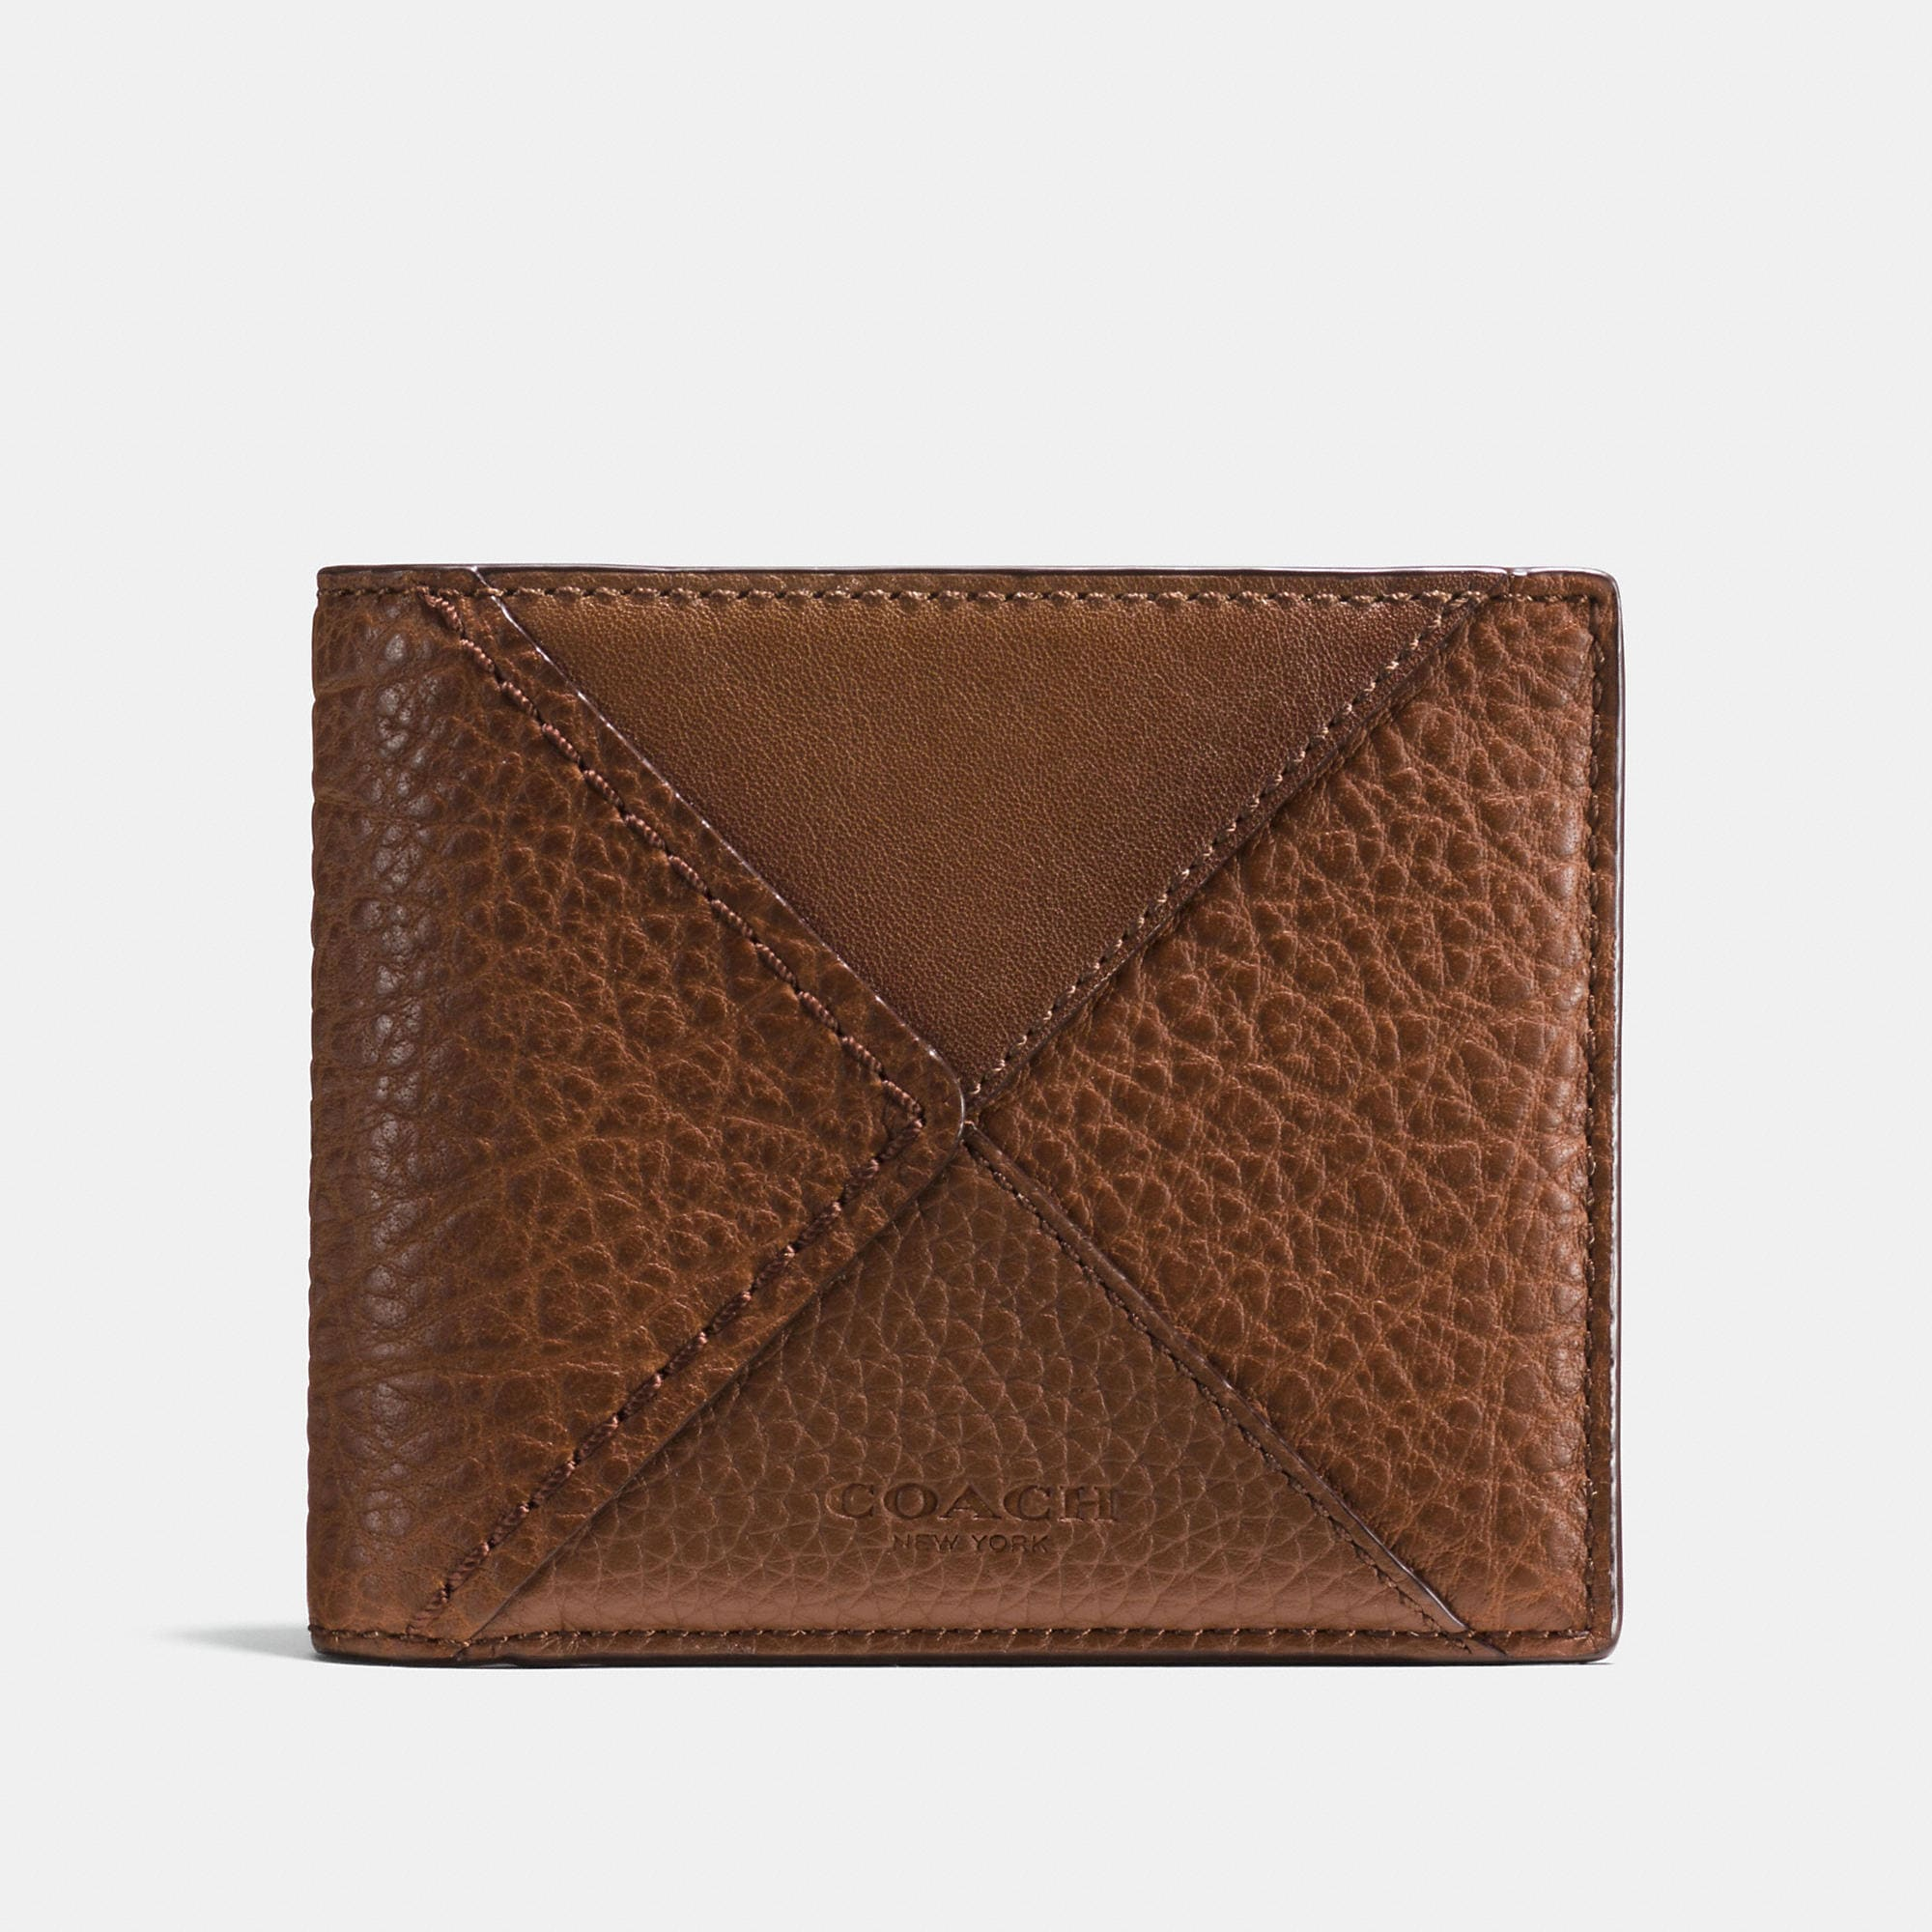 Coach 3-in-1 Wallet In Canyon Quilt Buffalo-embossed Leather